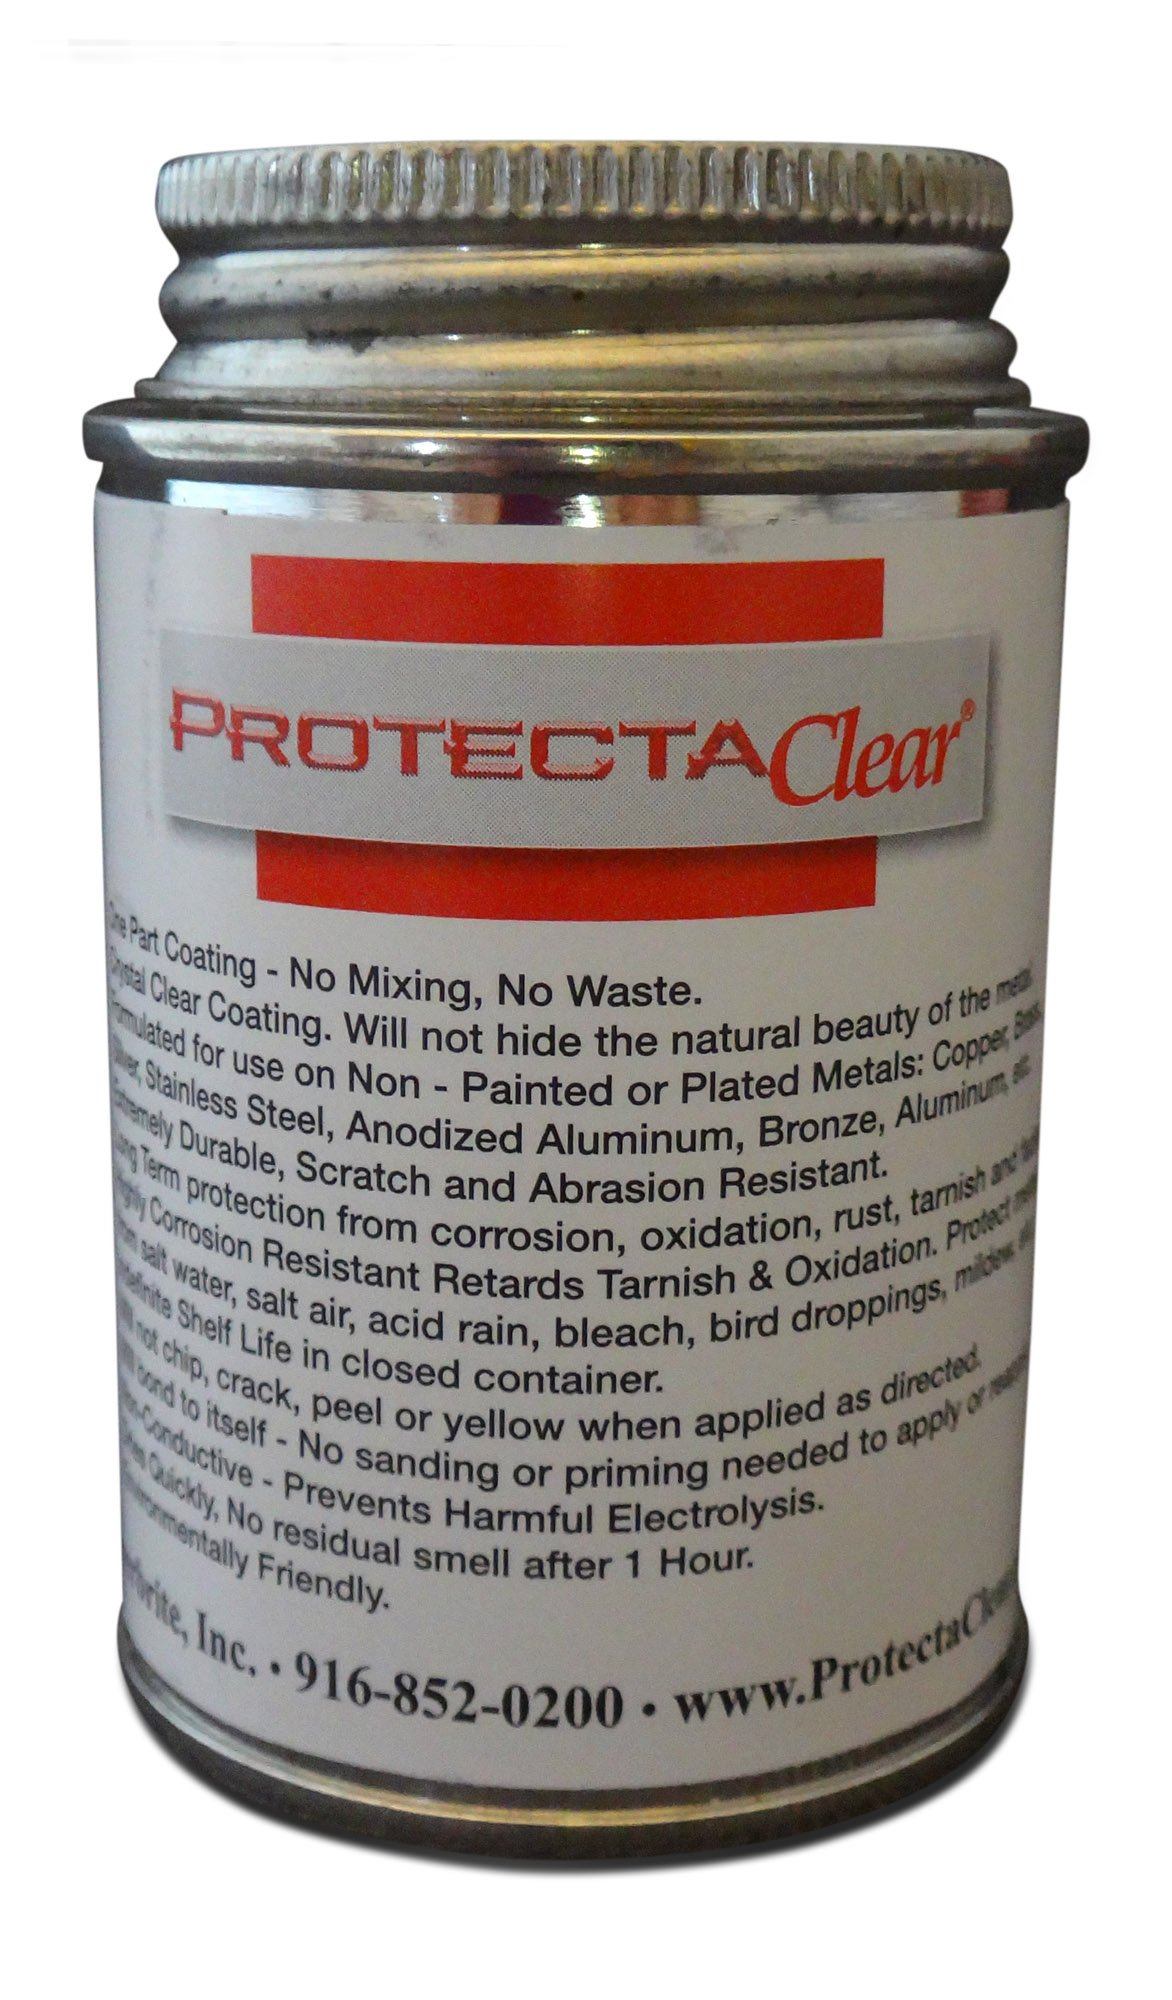 ProtectaClear 4 Oz. Clear, Protective Coating for Polished Metals, Stainless Steel, Jewelry - Prevent Tarnish & Protect Skin from Allergies